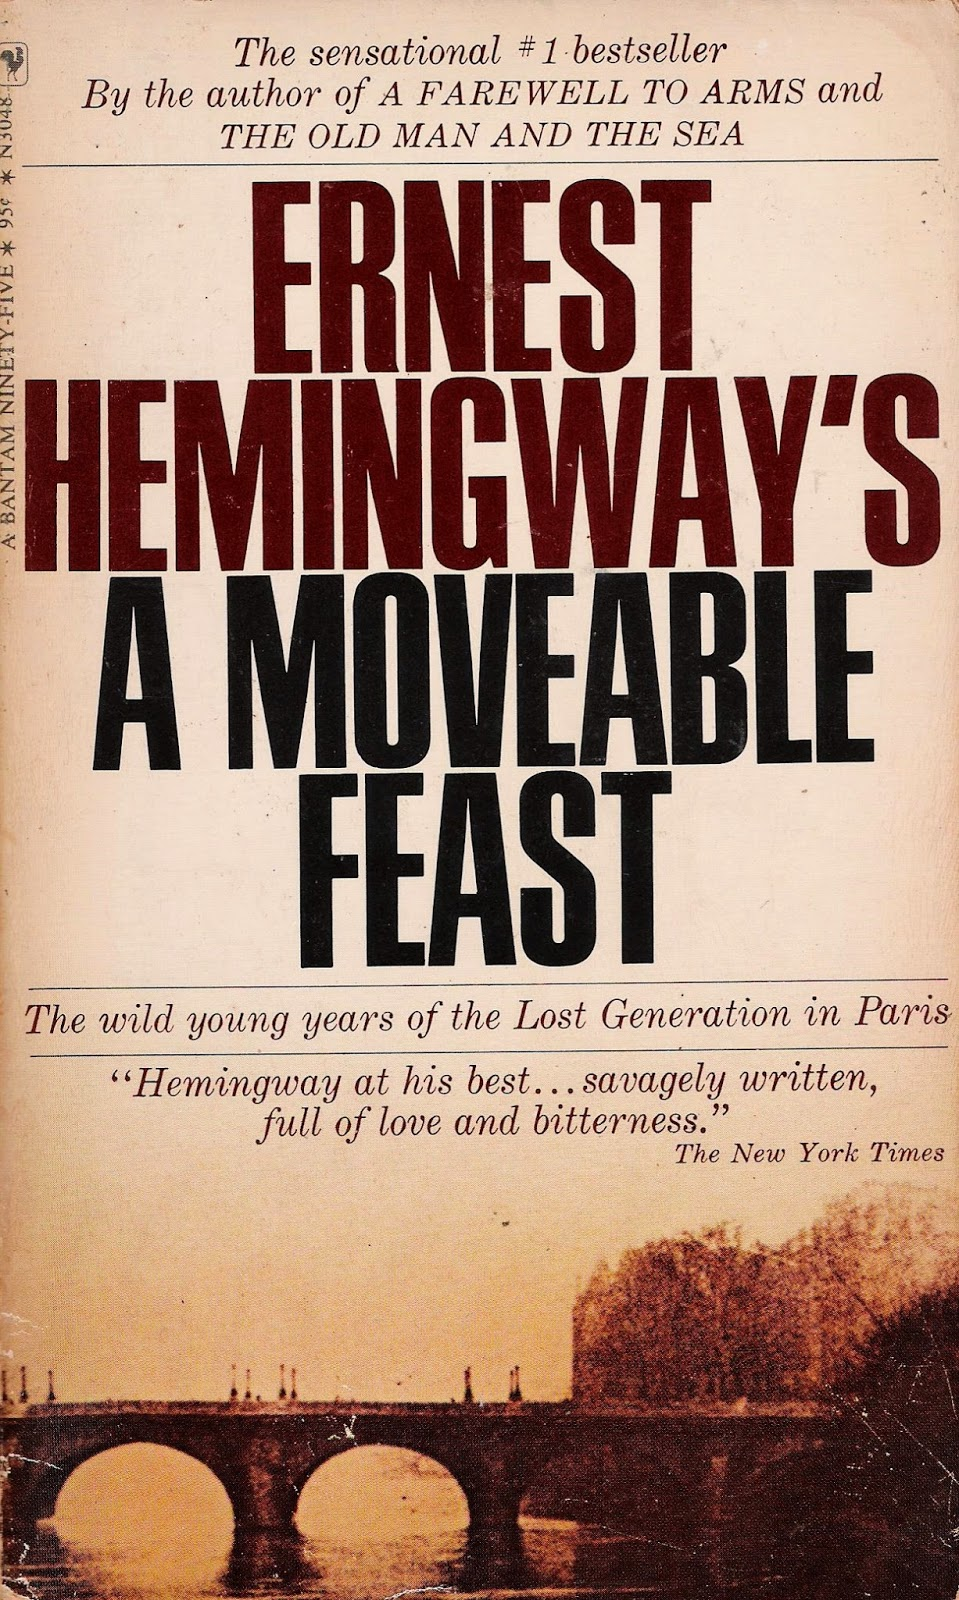 a moveable feast Peer review, winter 2000: this issue explores curricular coherence as a  systemic challenge and argues that, in an age of student mobility, curricular  coherence.